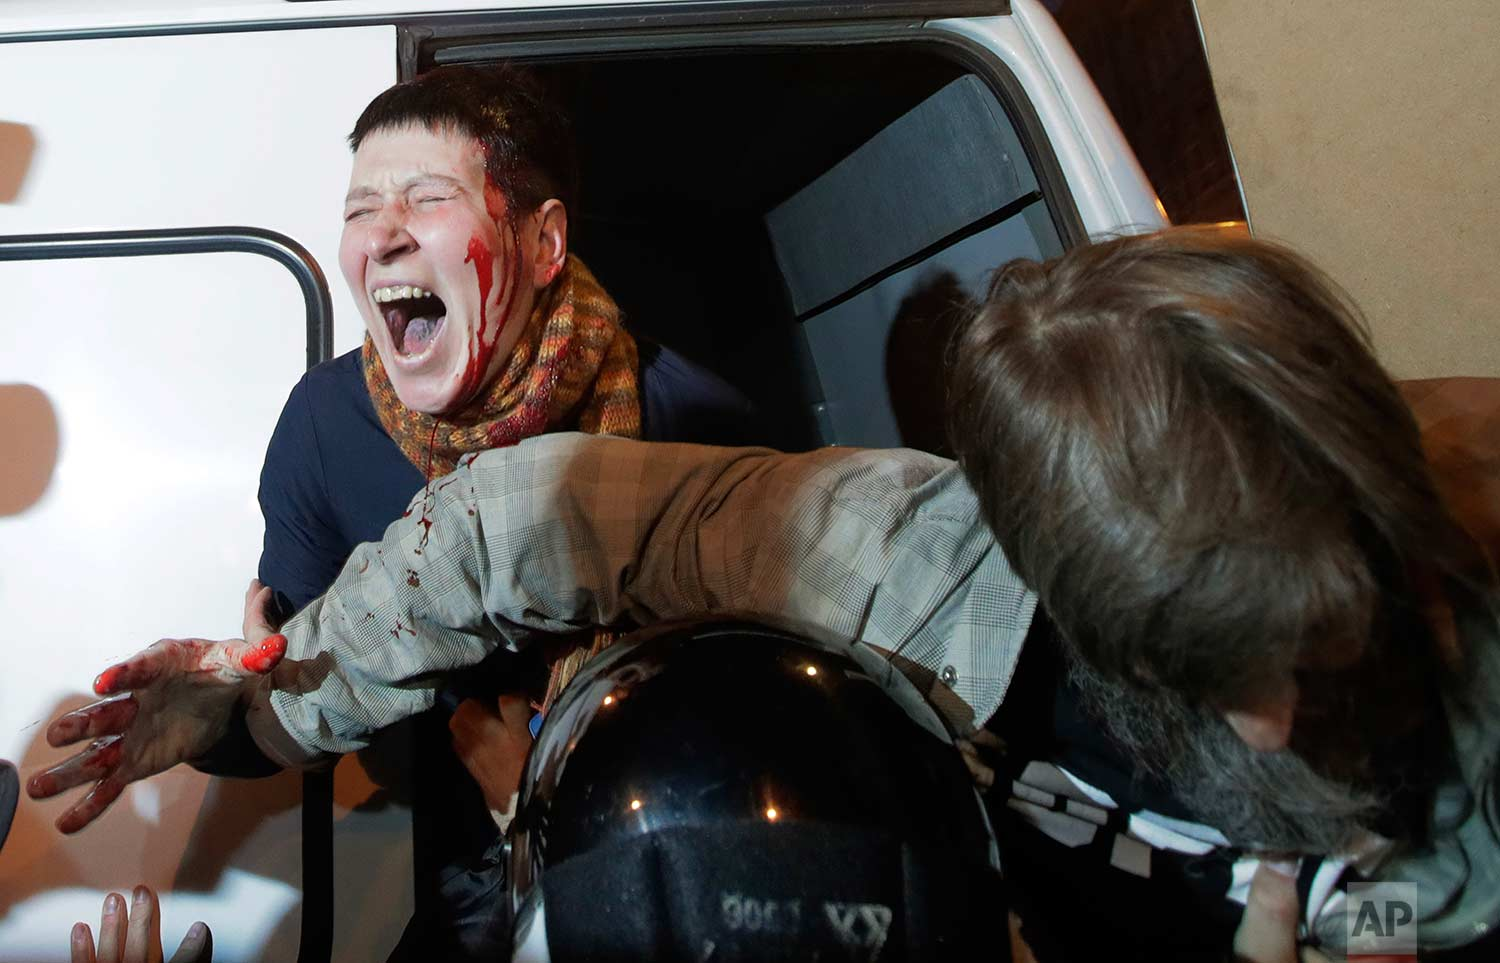 Riot police officers detain protesters during a rally in St. Petersburg, Russia on Saturday, Oct. 7, 2017. (AP Photo/Dmitri Lovetsky)